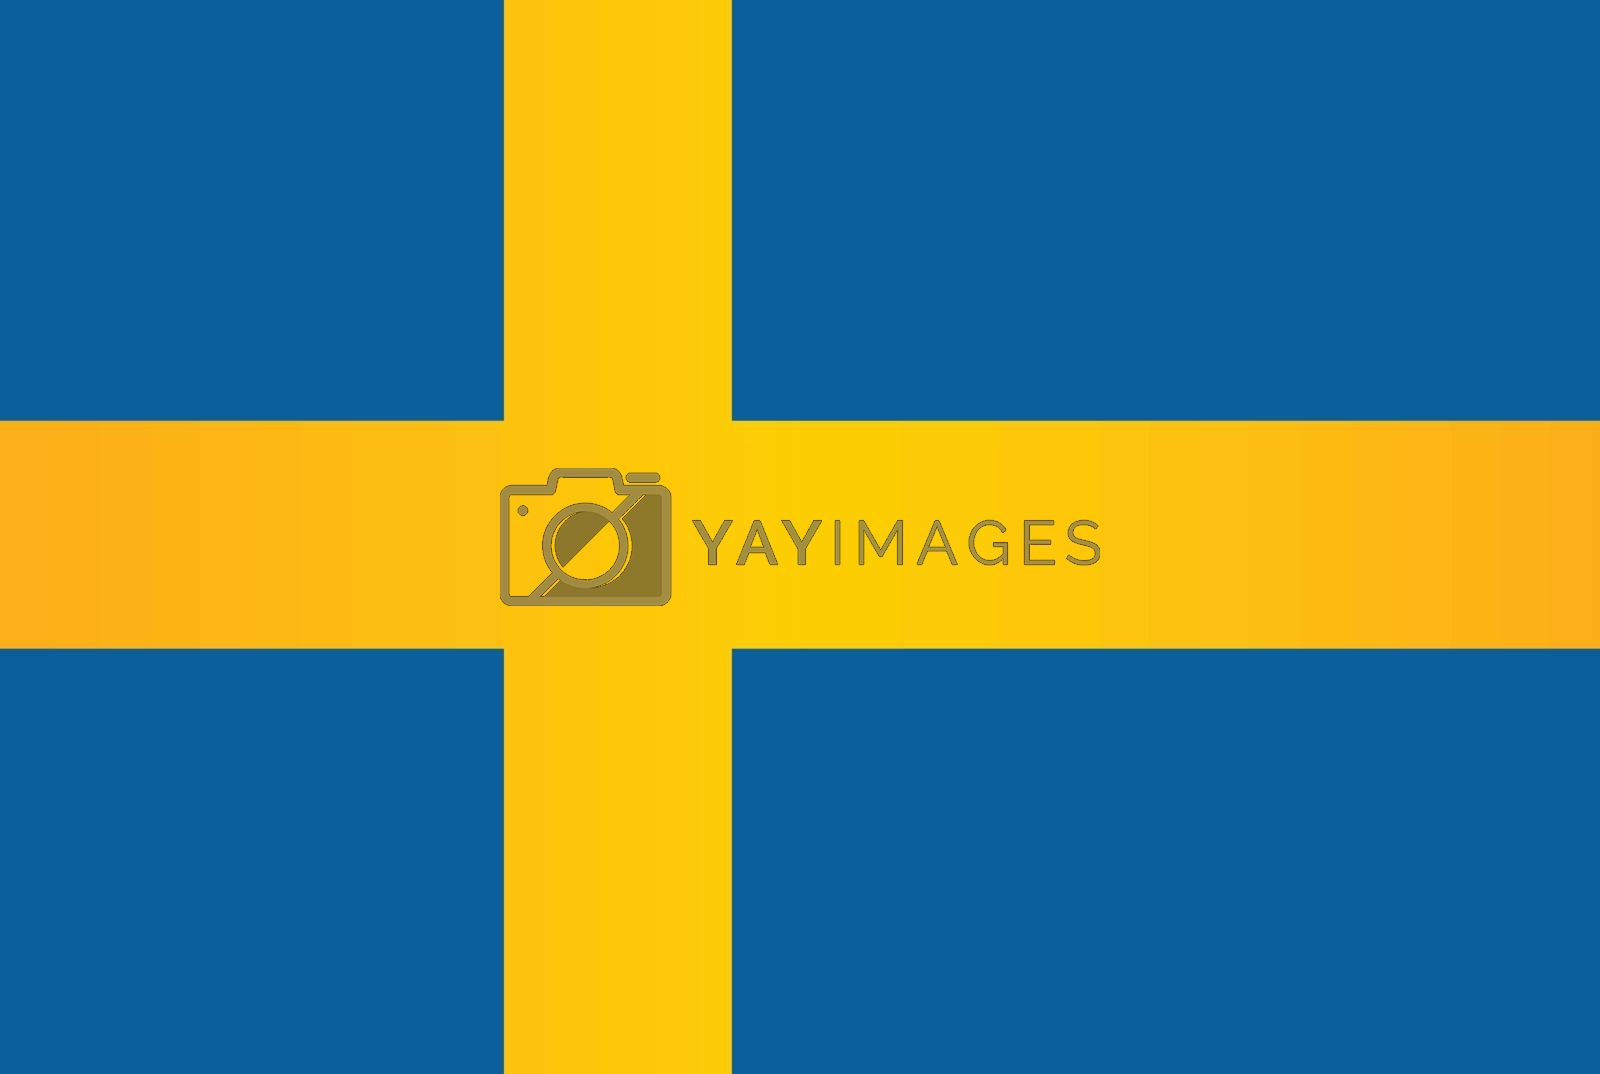 The flag of the Scandinavian country of Sweden in blue and yellow